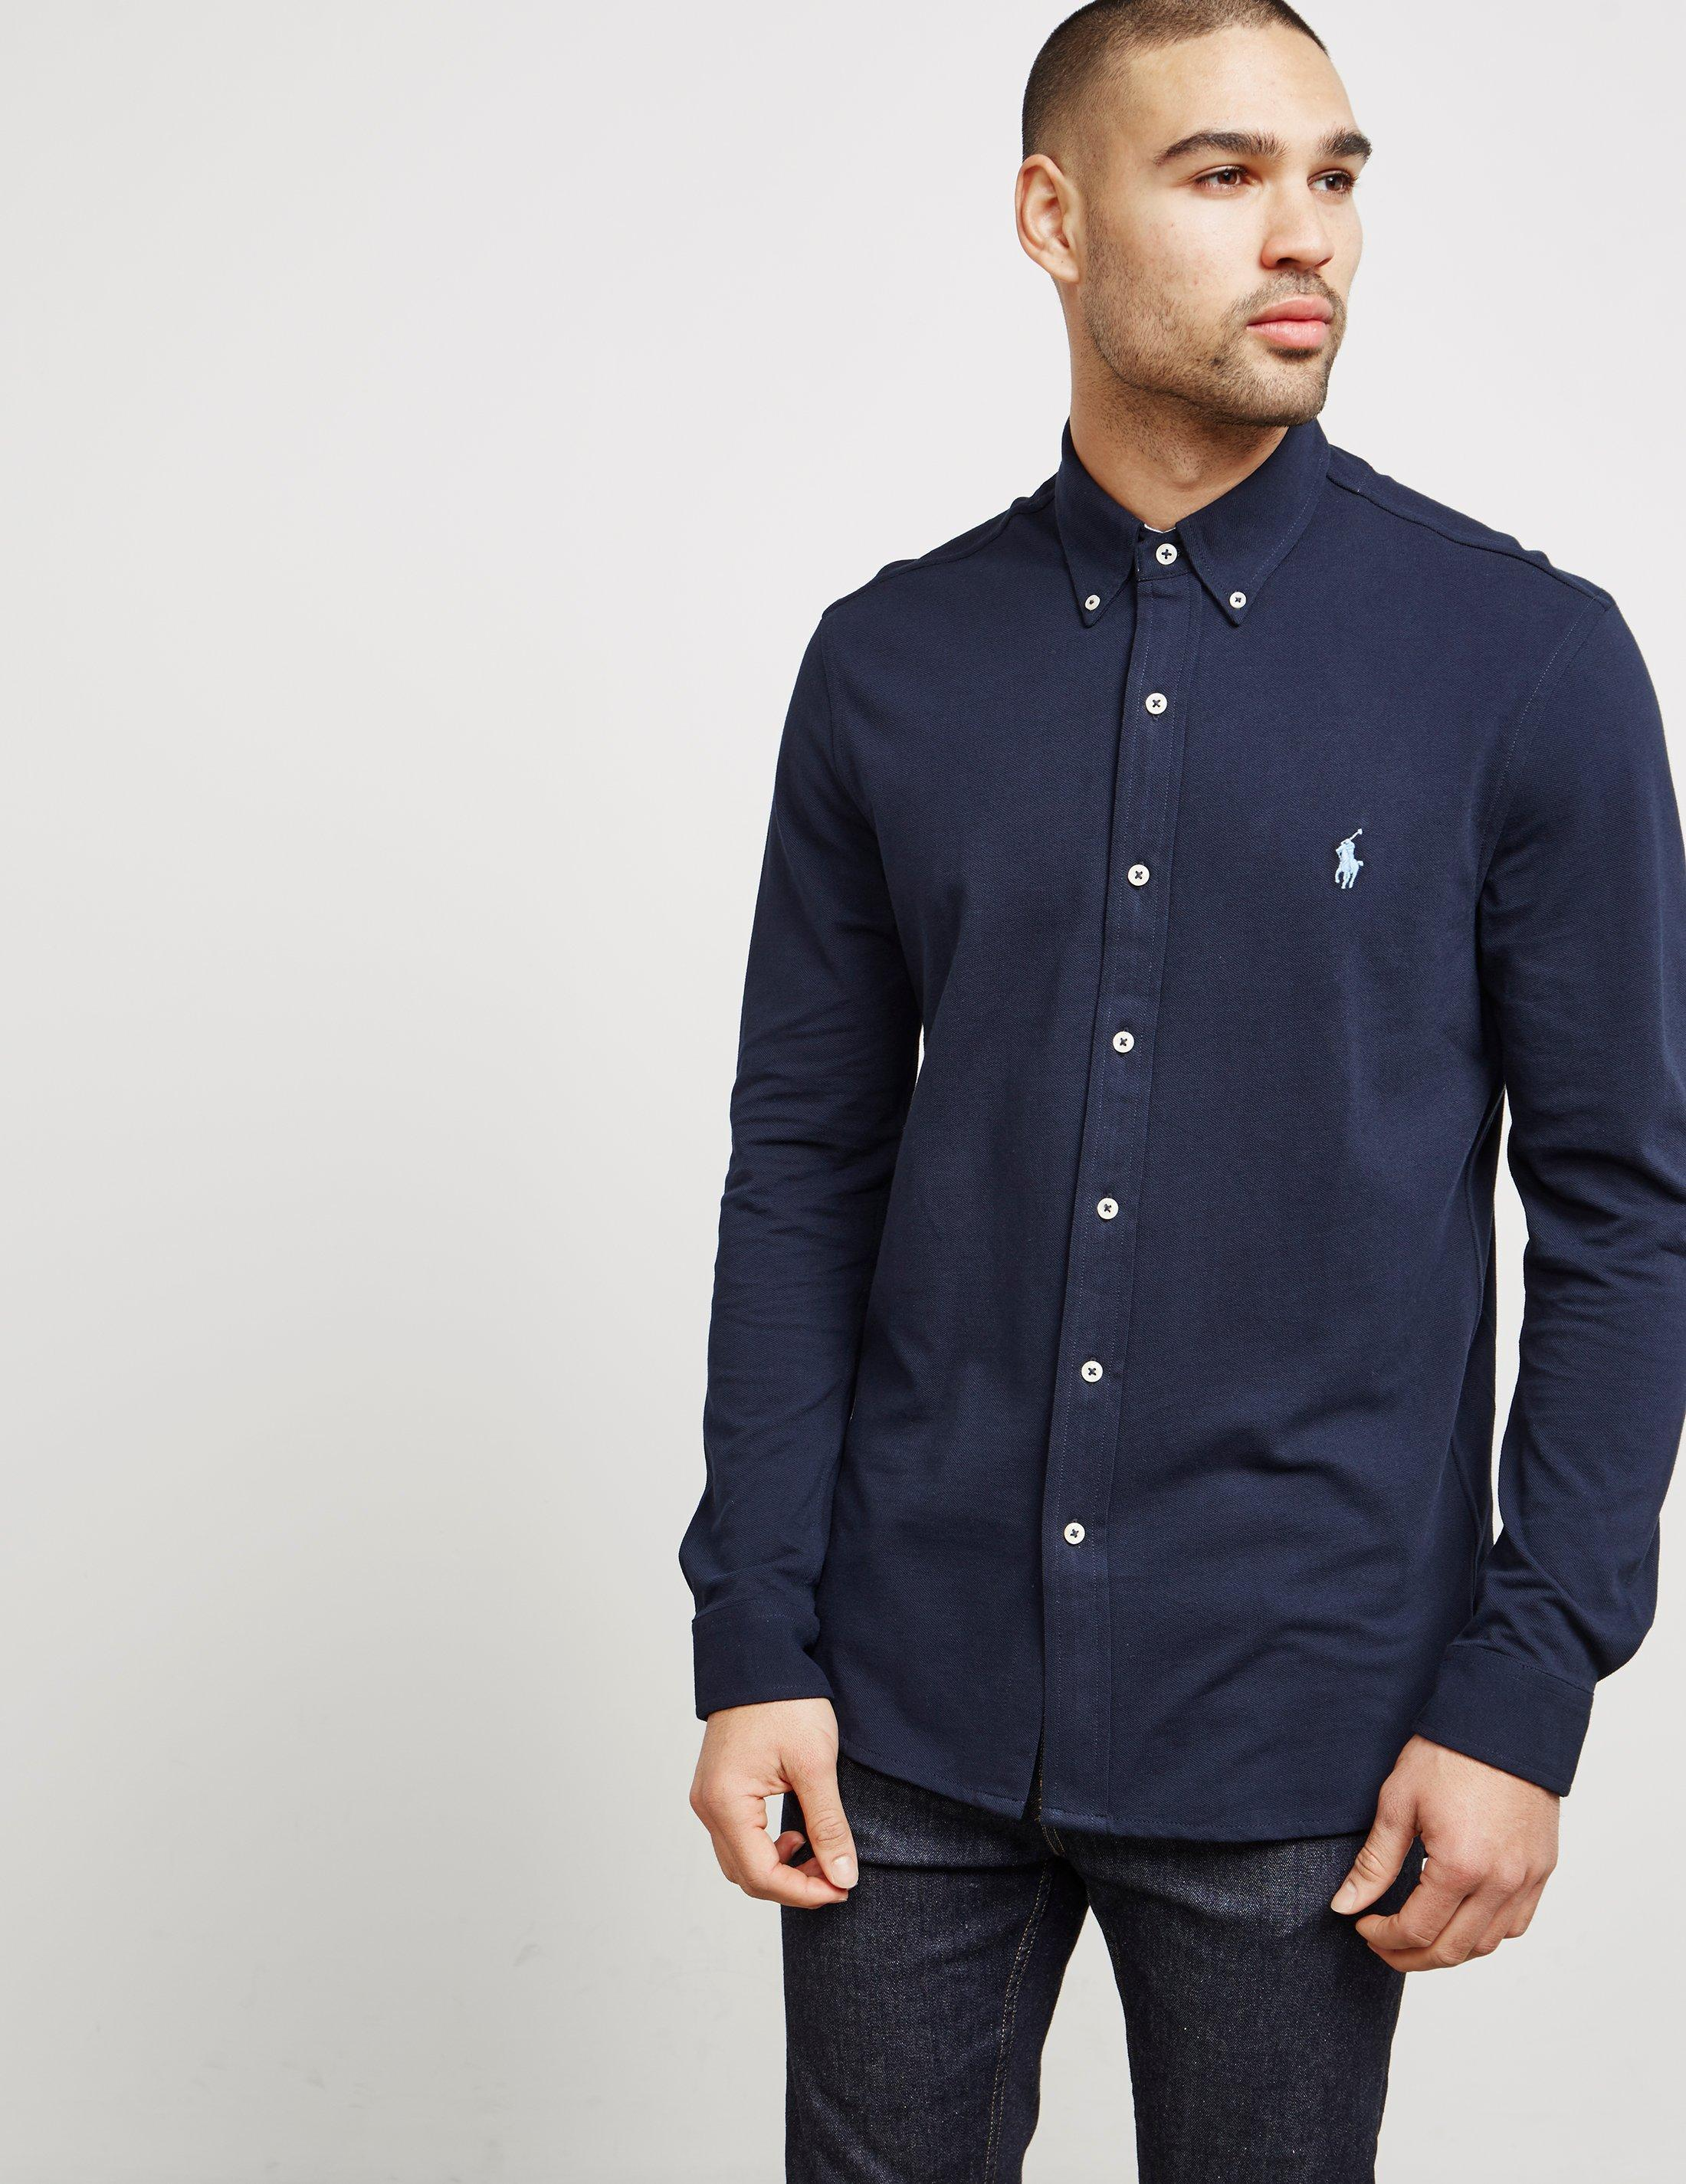 6783d6be Polo Ralph Lauren Mens Featherweight Mesh Long Sleeve Shirt Navy ...